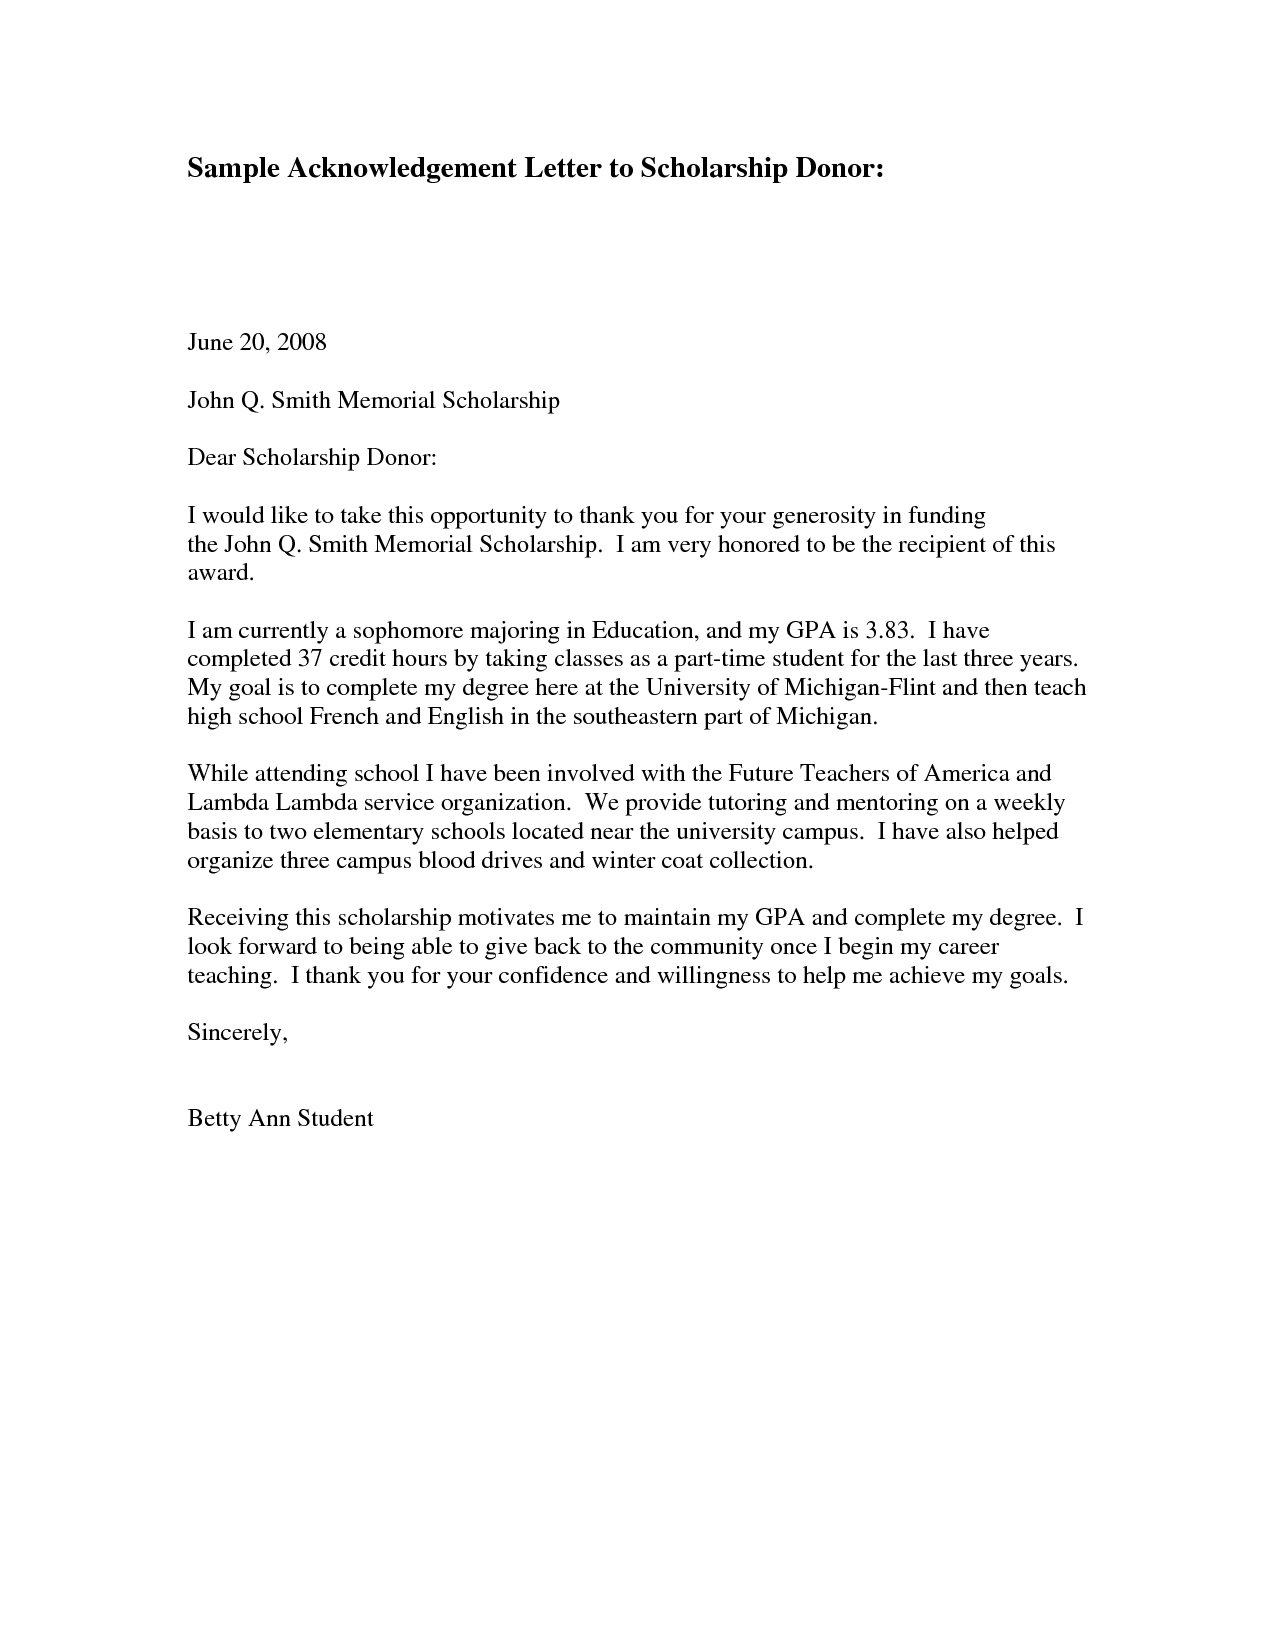 donor thank you letter sample – Thank You Letter for Scholarship Award